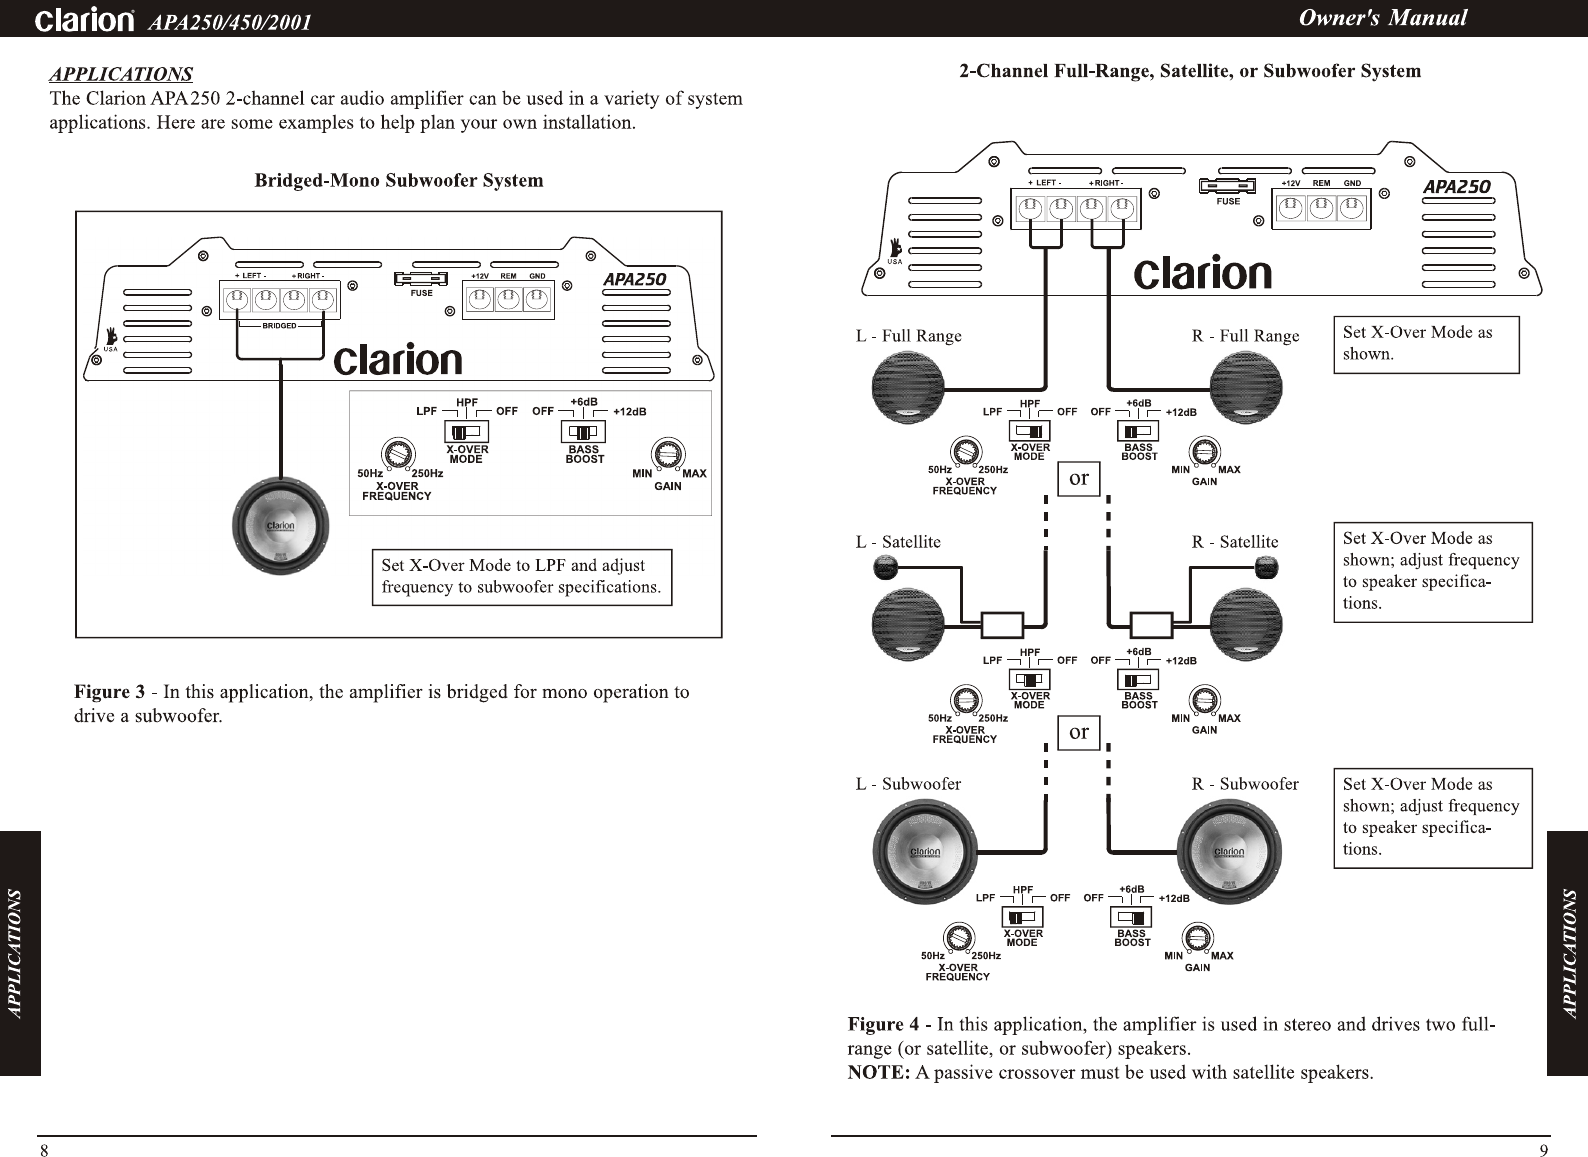 Wiring Diagram For Clarion Drb5475 Free Download Pin Rj11 To Rj45 Ajilbabcom Portal On Pinterest Page 2 Of Car Stereo System Apa250 User Guide Dxz645mp At